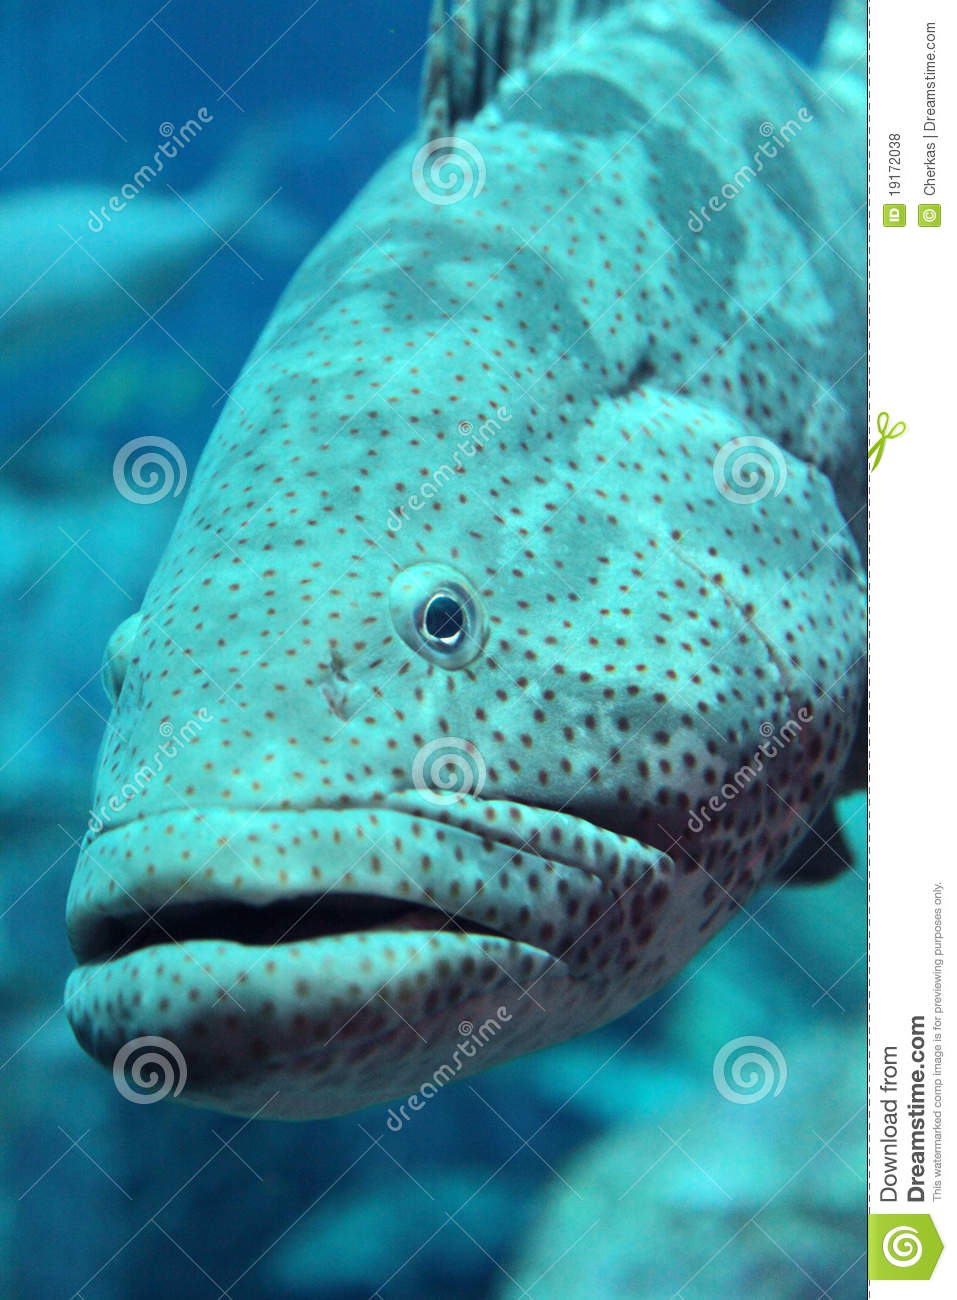 Grouper royalty free stock photos image 19172038 for Renew nc fishing license